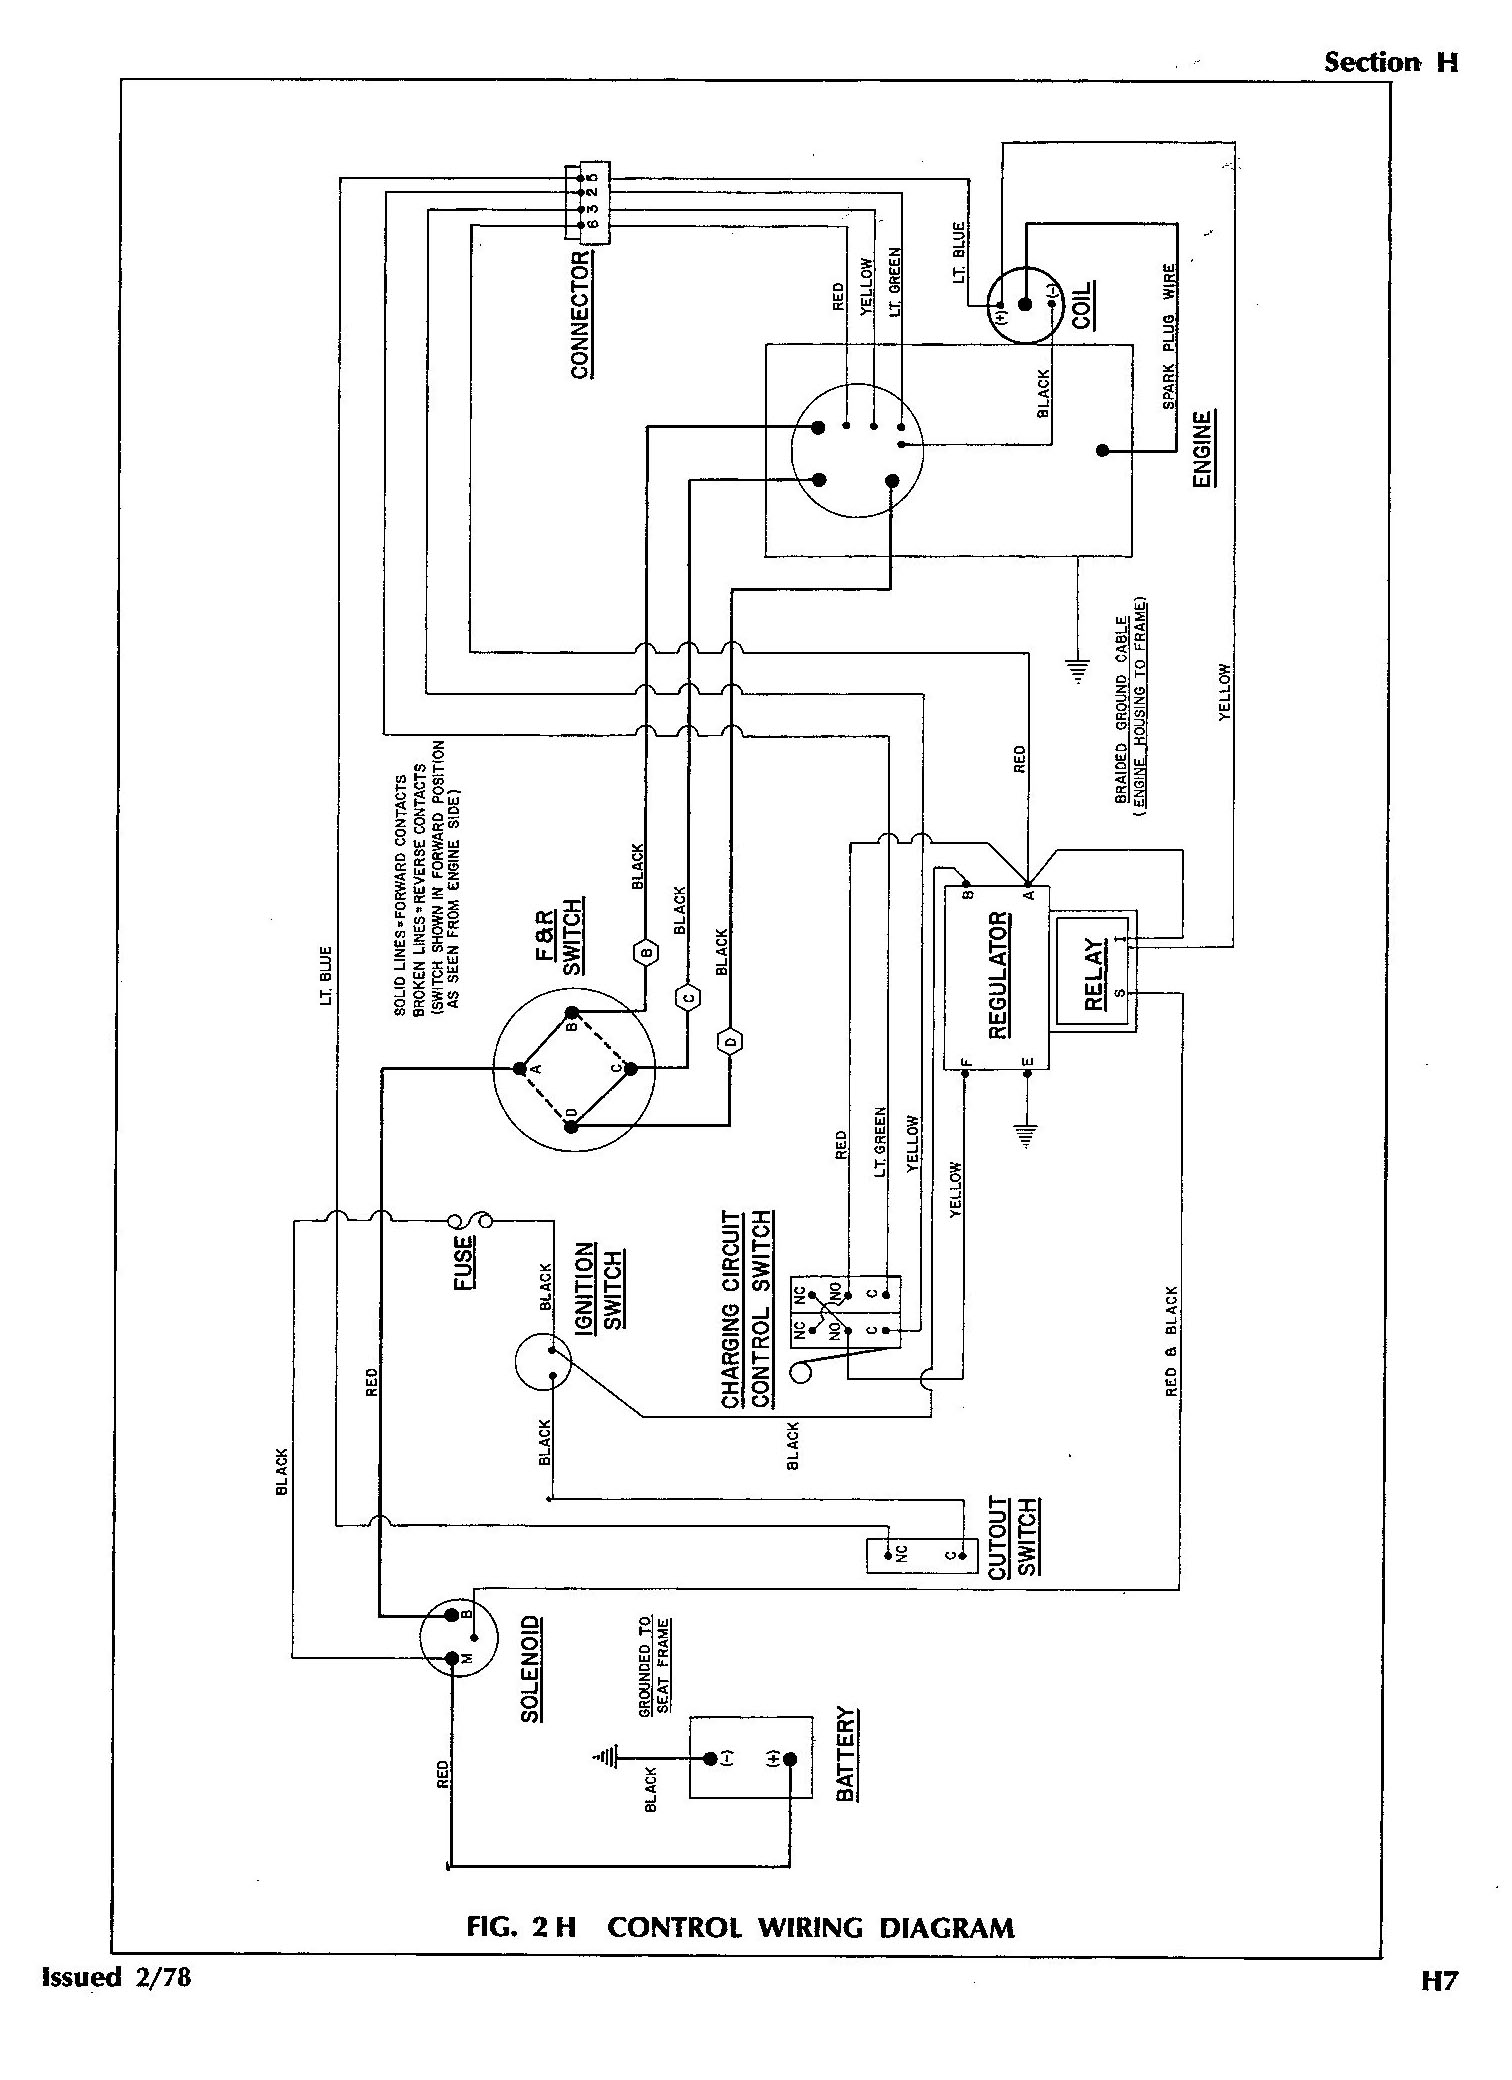 175 besides 1549 furthermore Yanmar Generator Wiring Diagram in addition Some Of Our Custom Carts further Golf Cart Battery Wiring 12 Volt Lights Voltage Reducer Drawing Pleasant Without 0. on ez go electric motor diagram